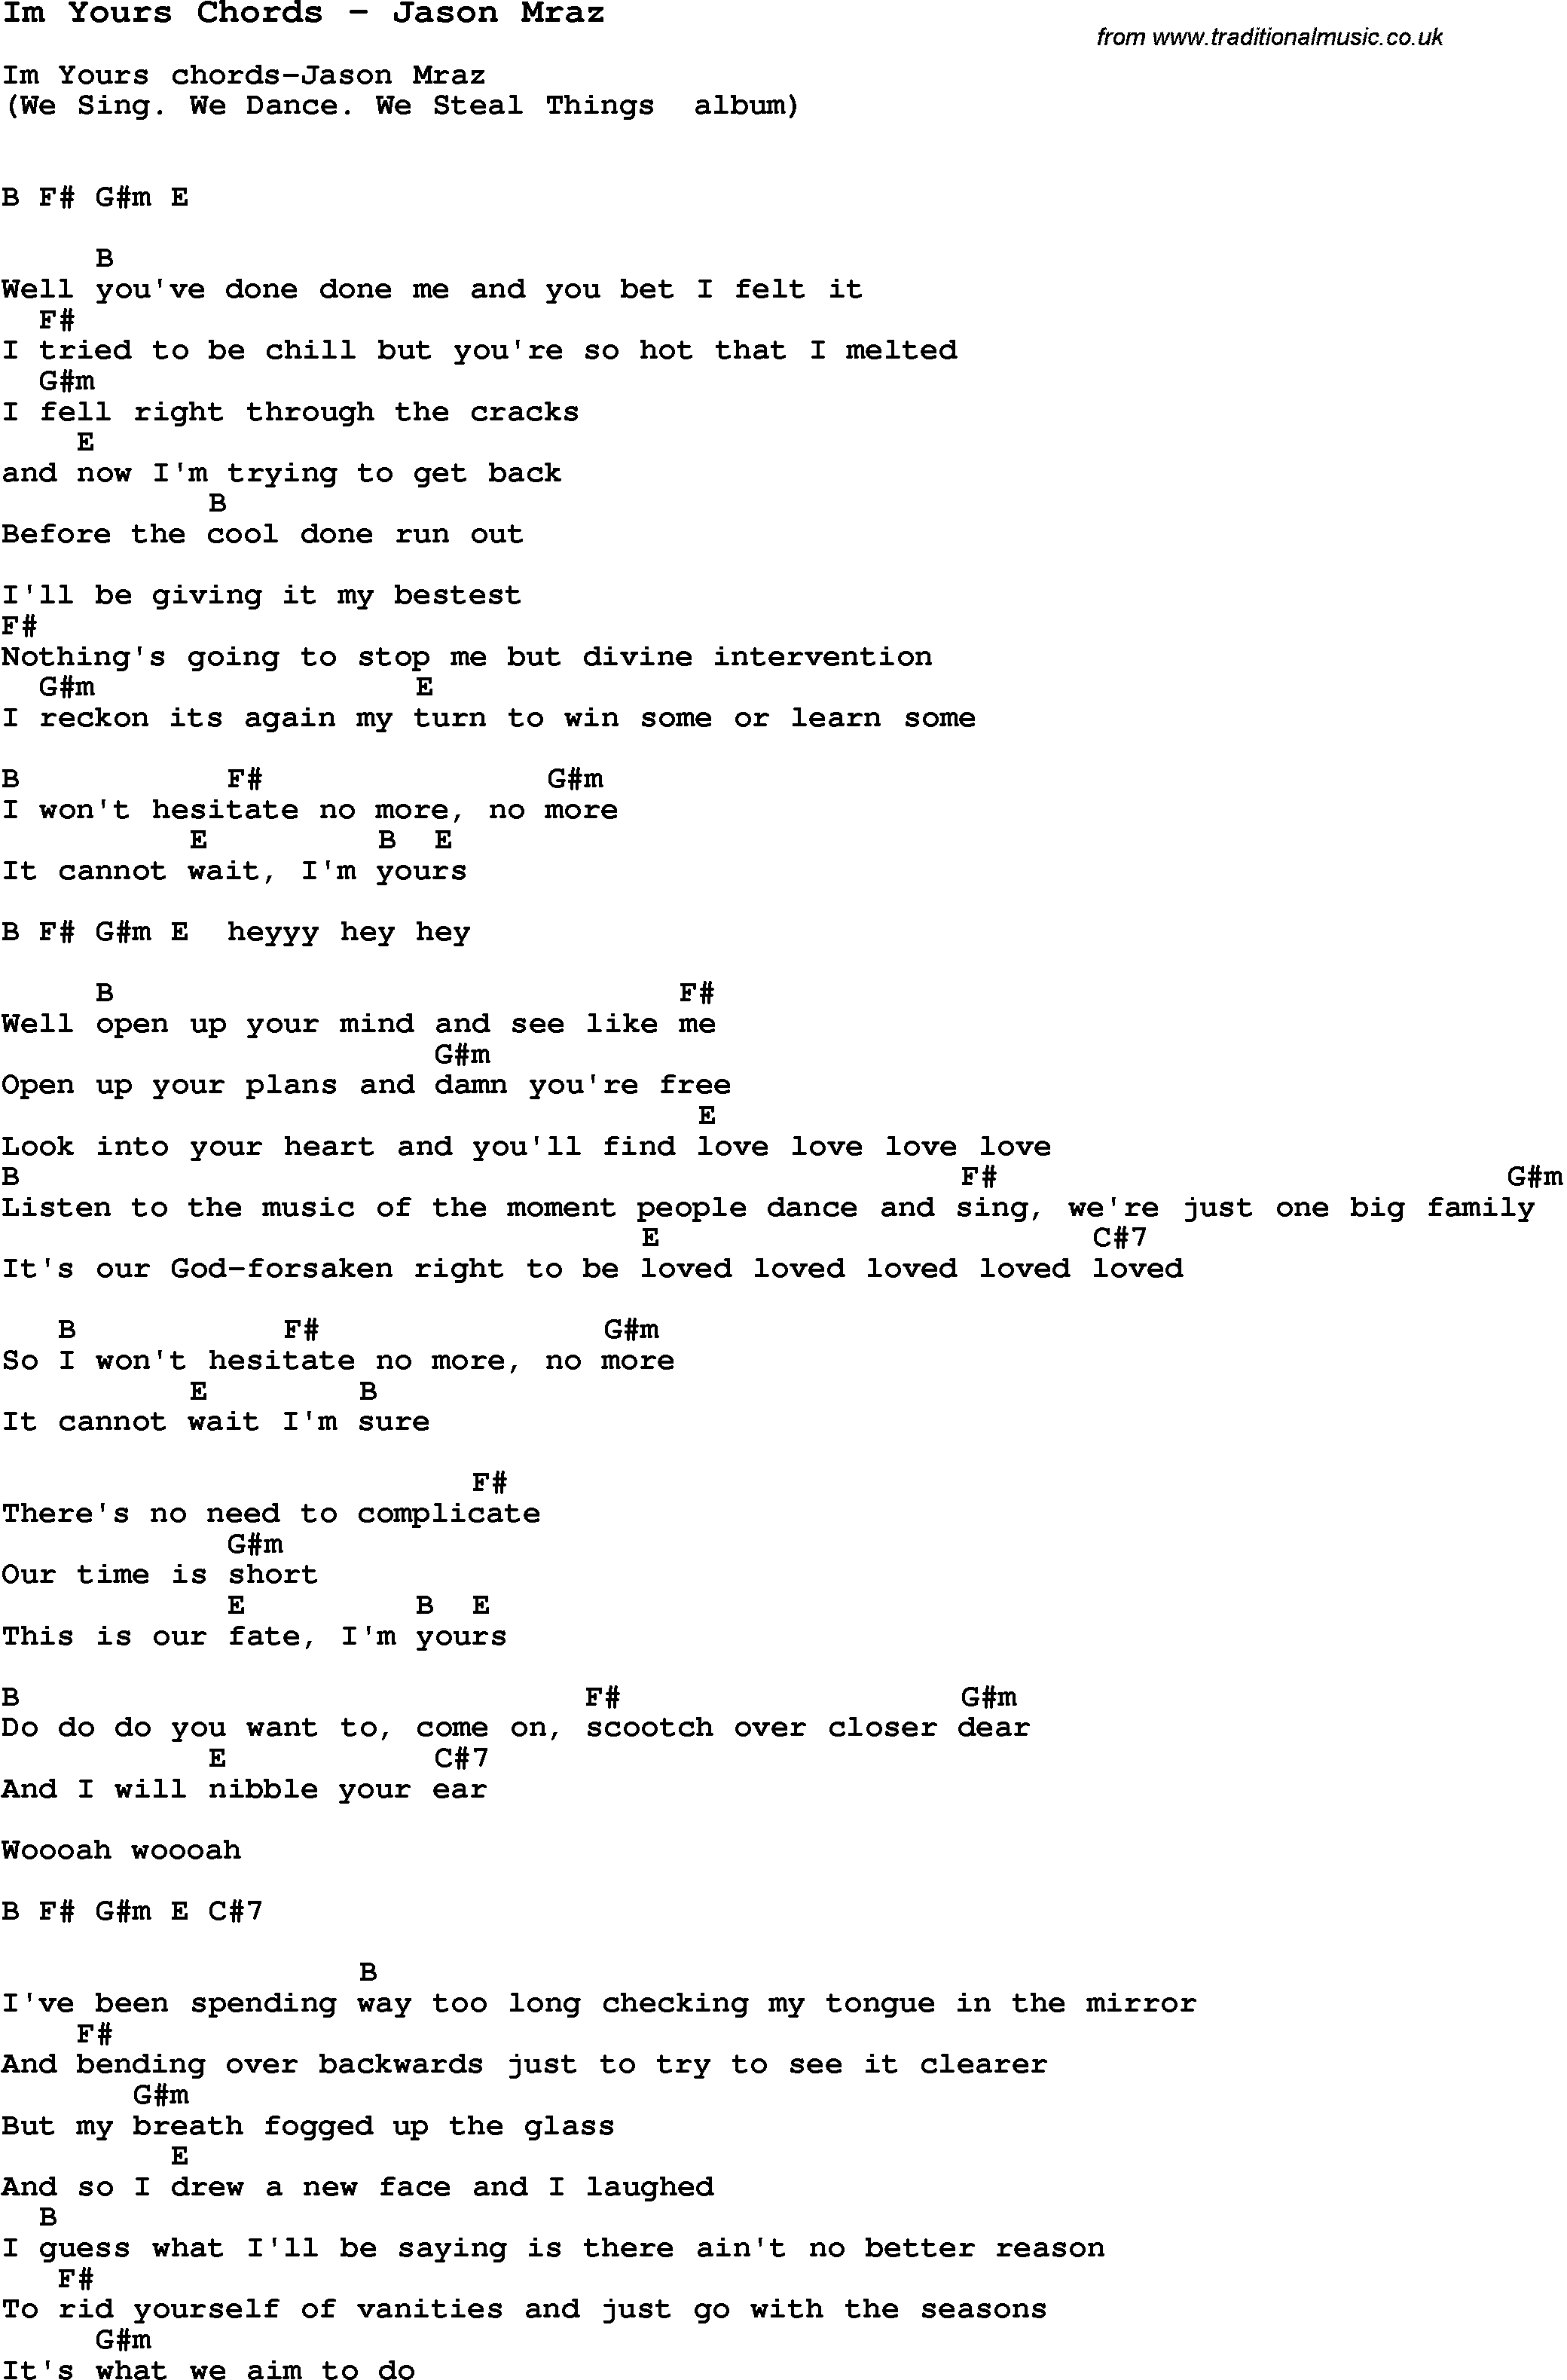 Song im yours chords by jason mraz song lyric for vocal song im yours chords by jason mraz with lyrics for vocal performance and accompaniment chords hexwebz Images